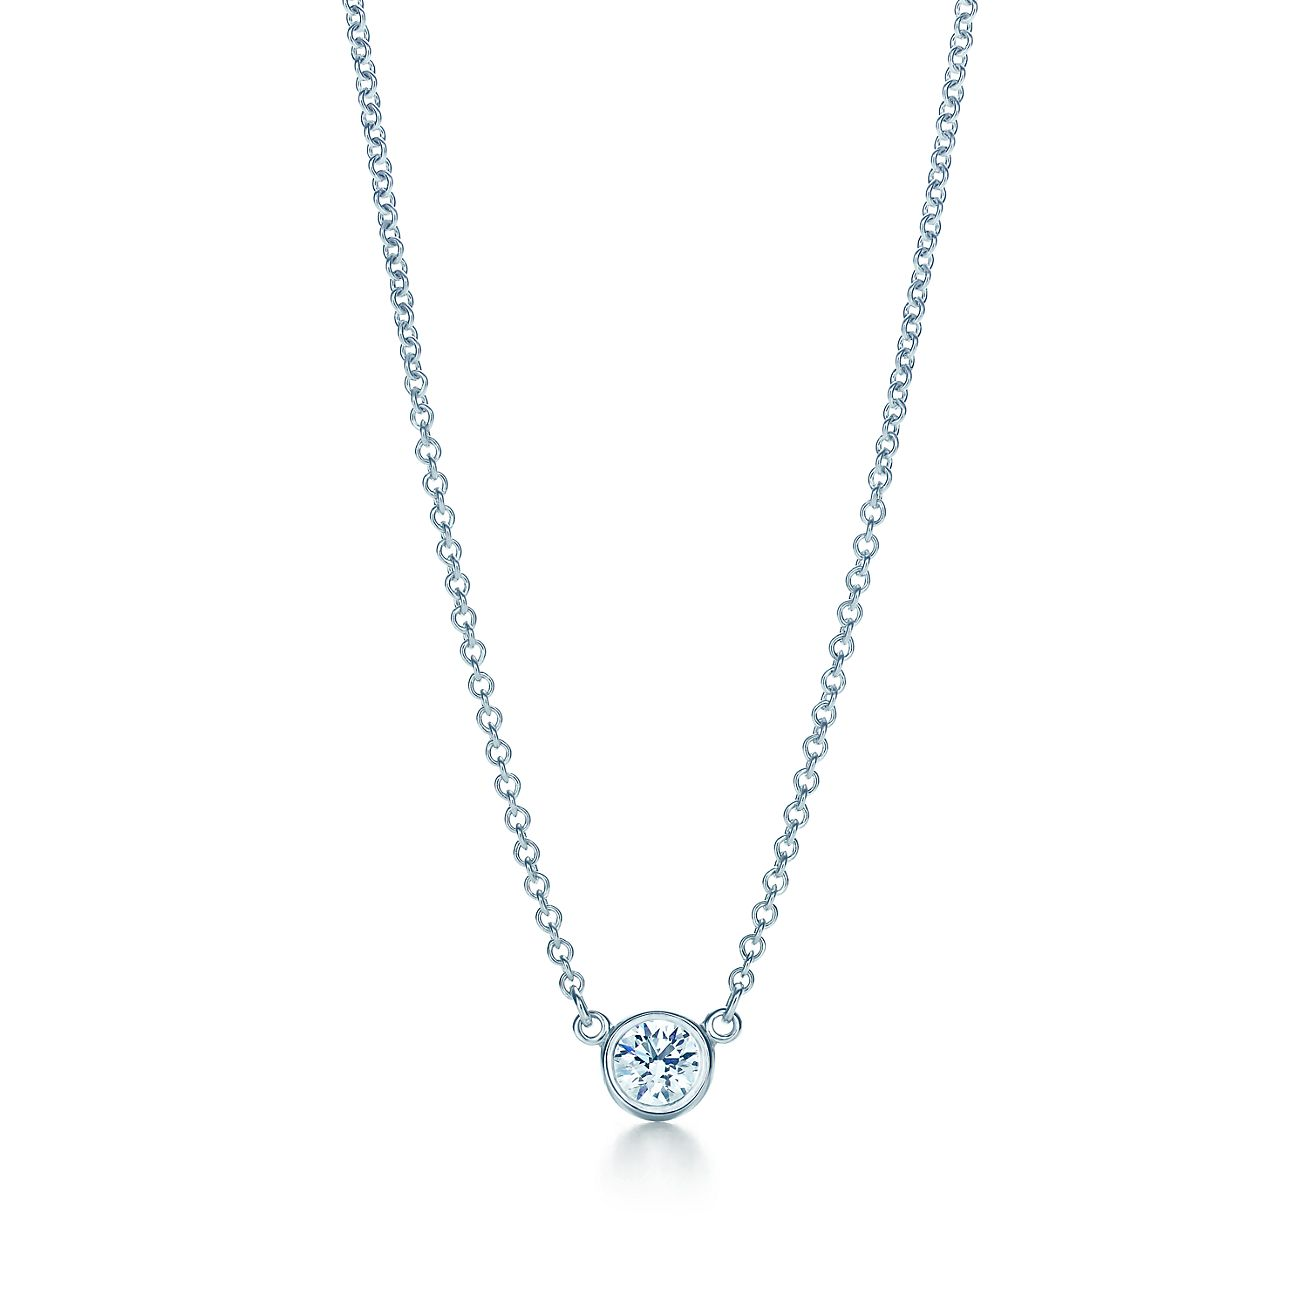 raton tiffany necklace co boca diamond tennis victoria product tco platinum